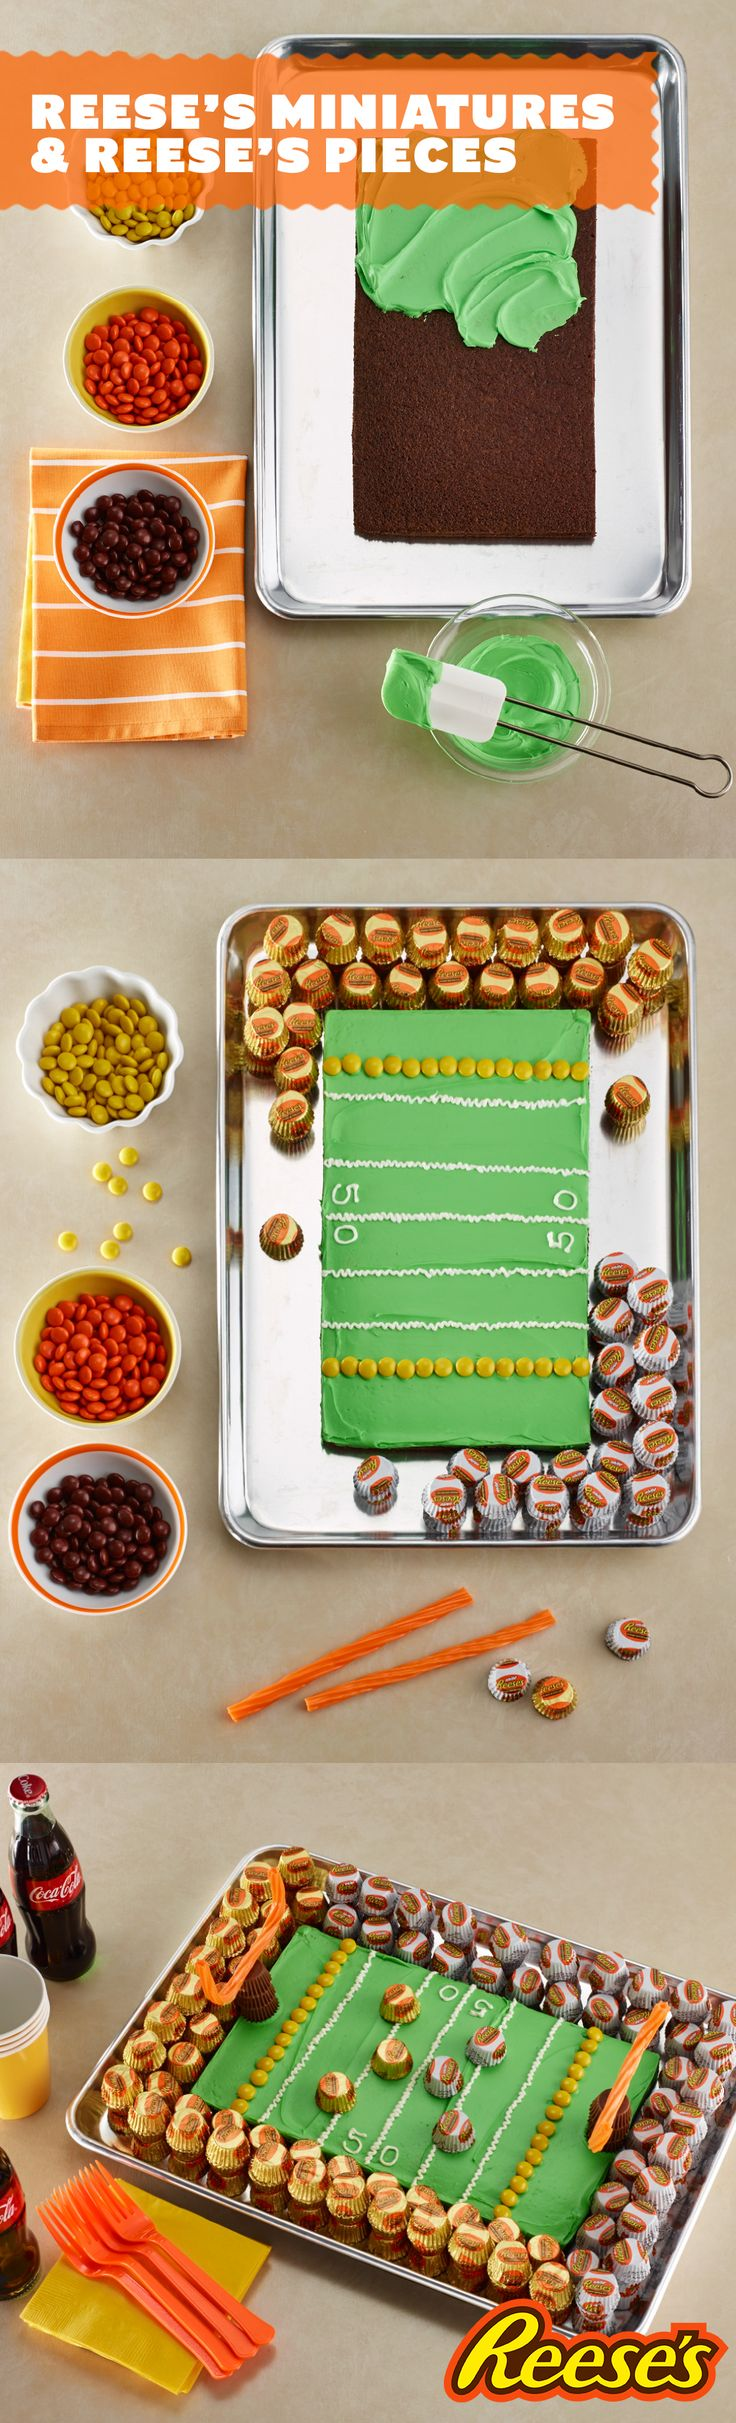 Game time means it's time to pull out all the stops and go for two...Reese's Peanut Butter Cups that is. Score a touchdown this game day with this cake recipe that has not one but two the Reese's star players: Reese's Pieces and Reese's Miniatures.